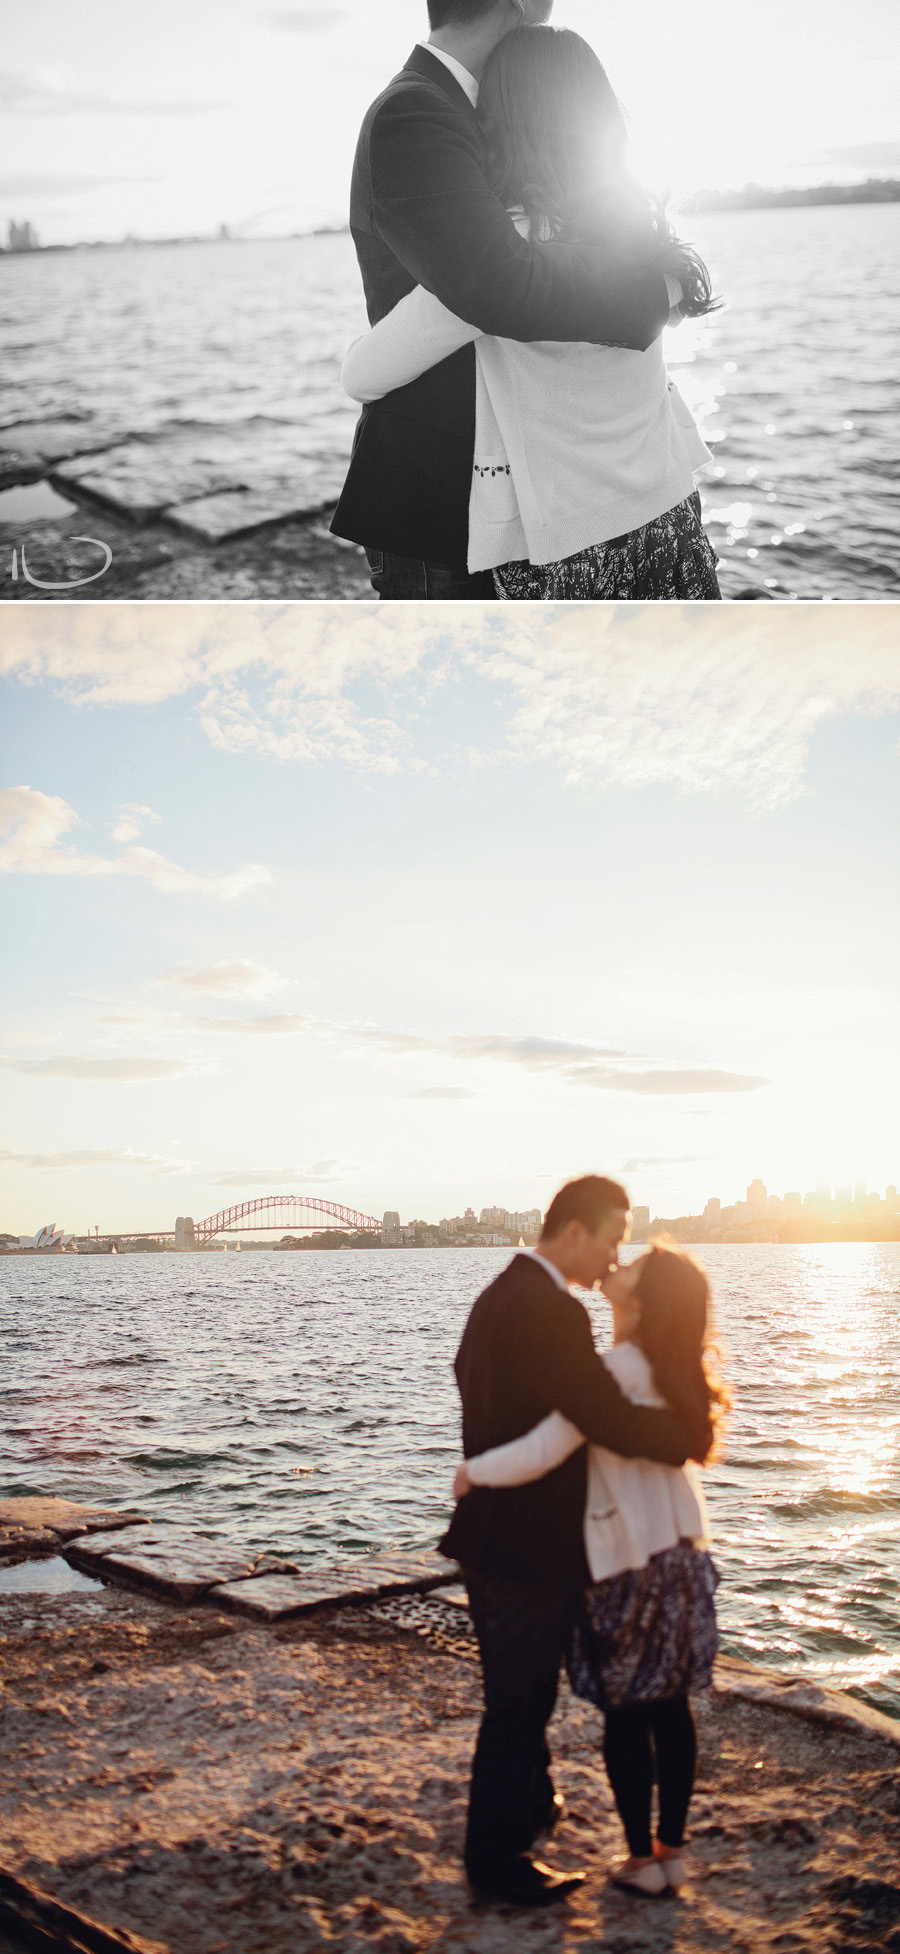 Sydney Wedding Photography: Stephanie & Dean at Bradleys Head